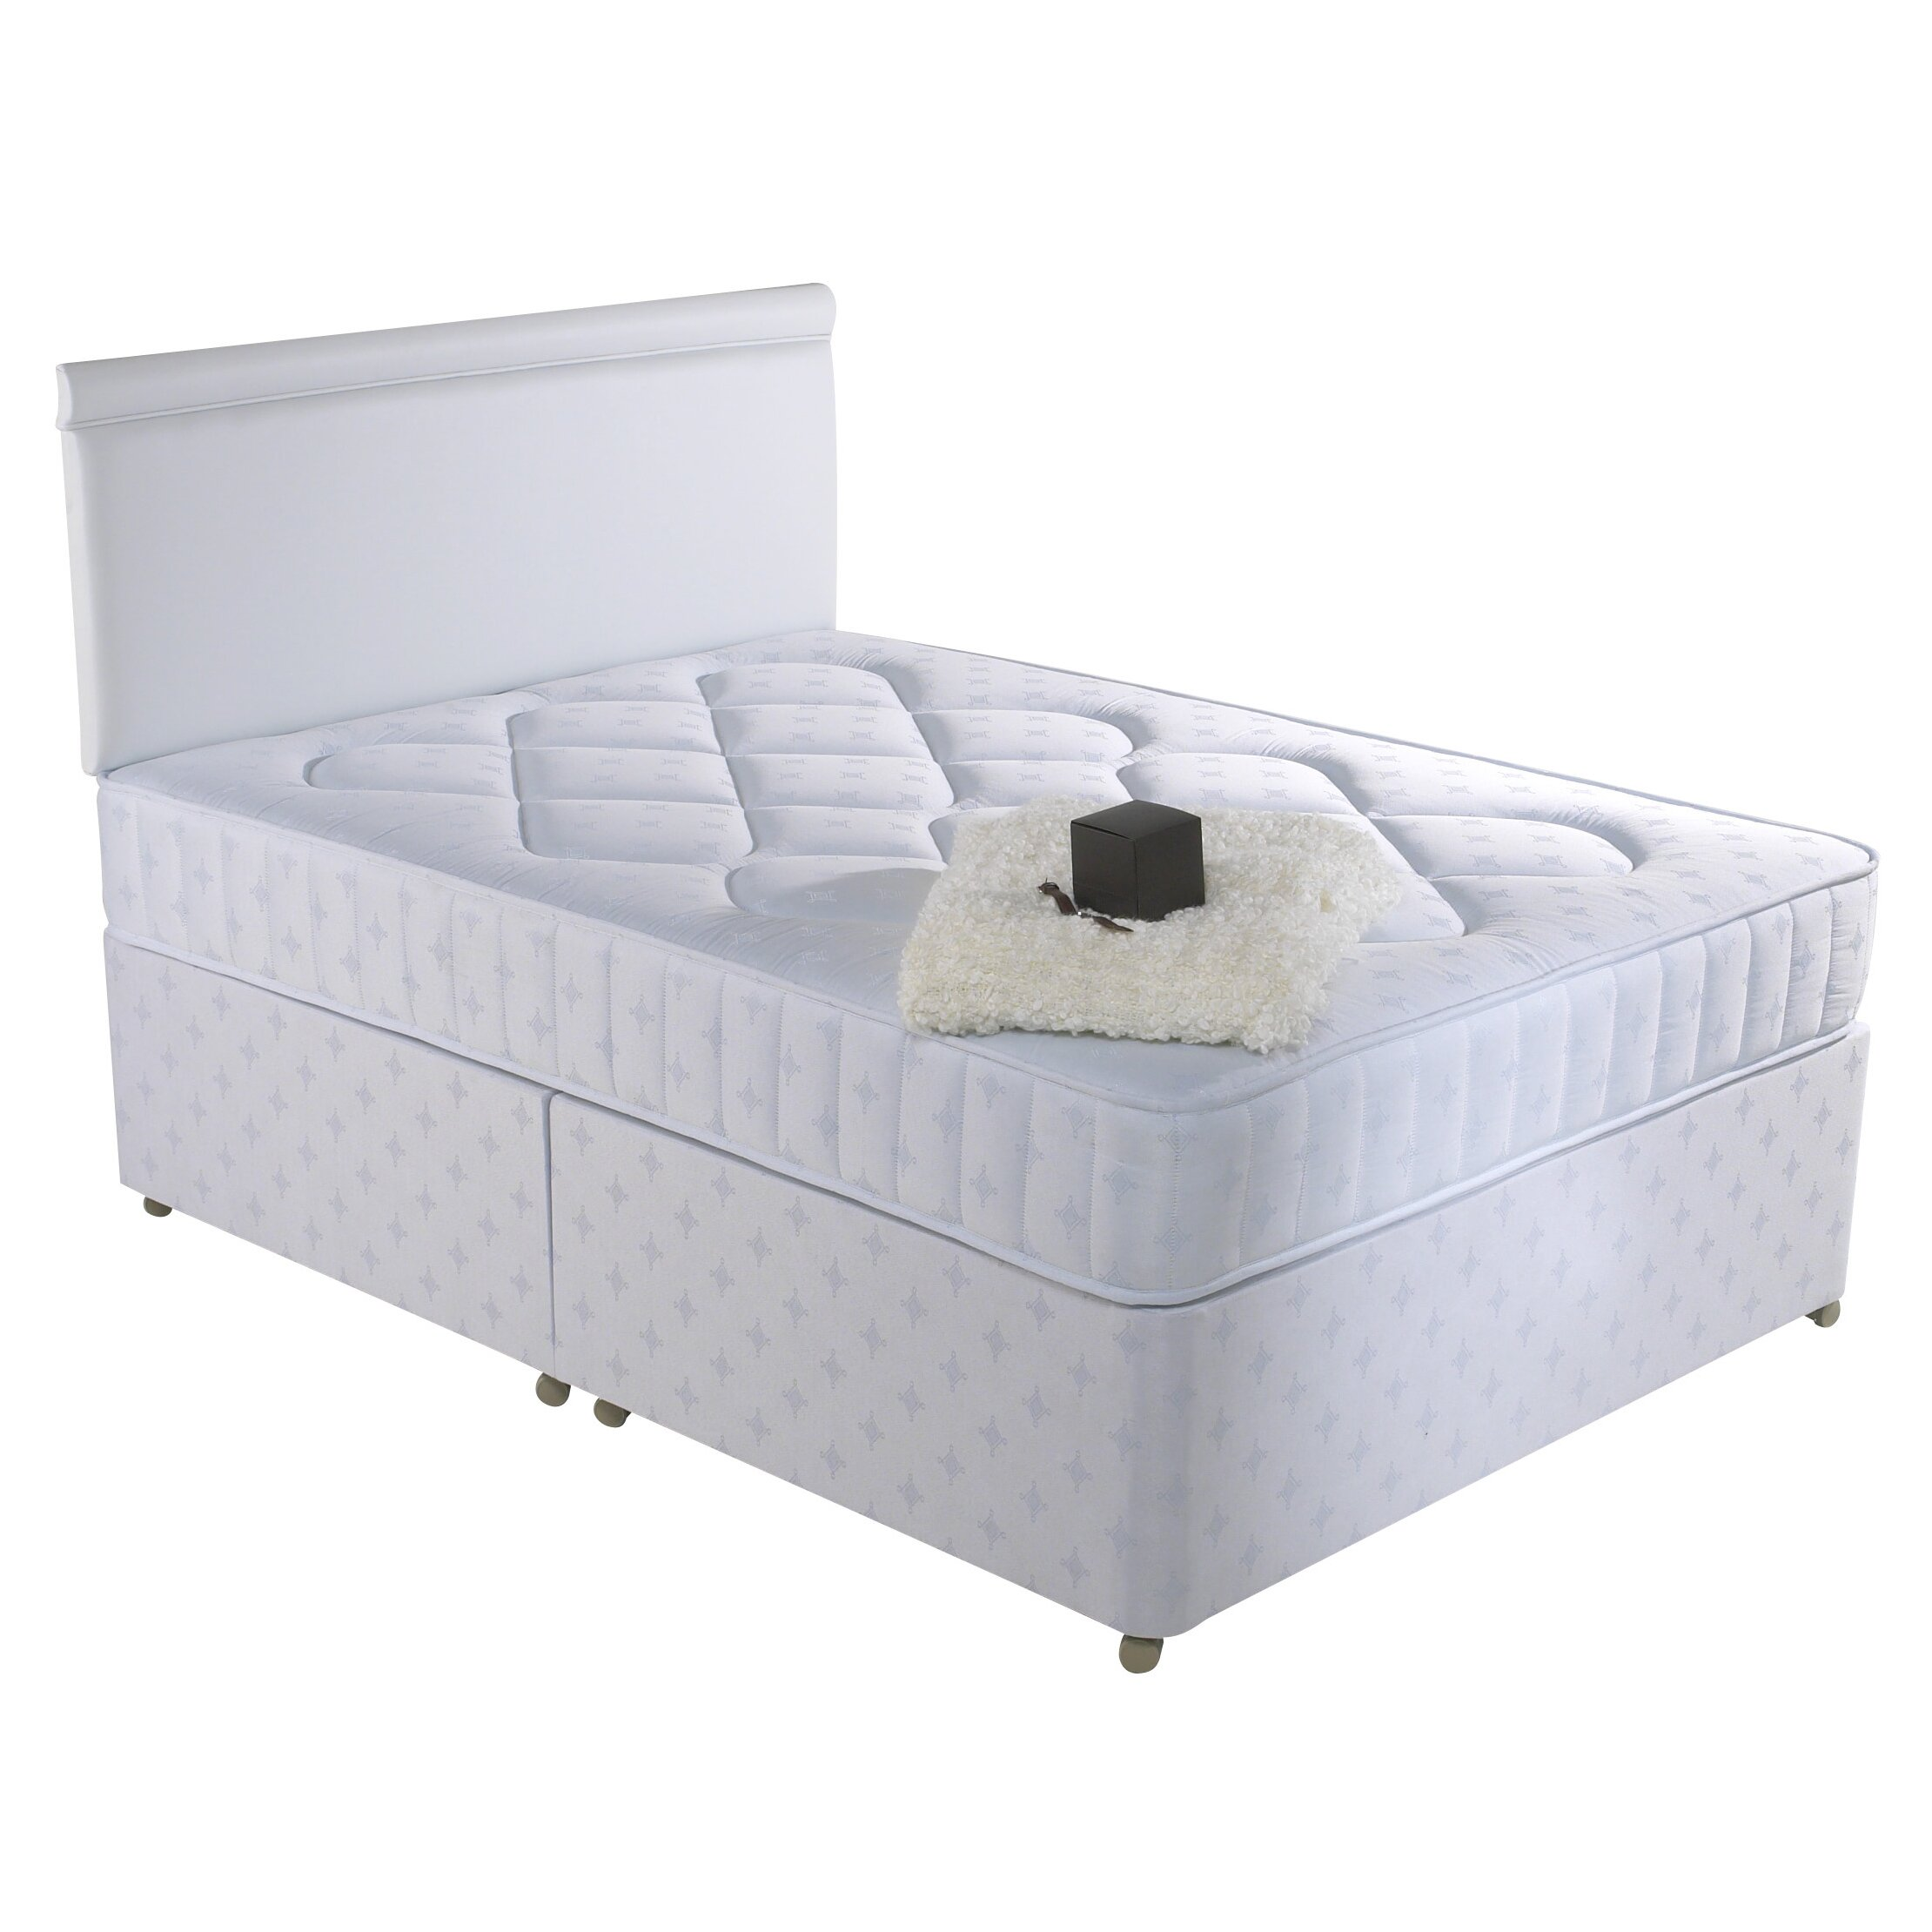 Prestington steere coil sprung mattress reviews wayfair uk for White double divan bed